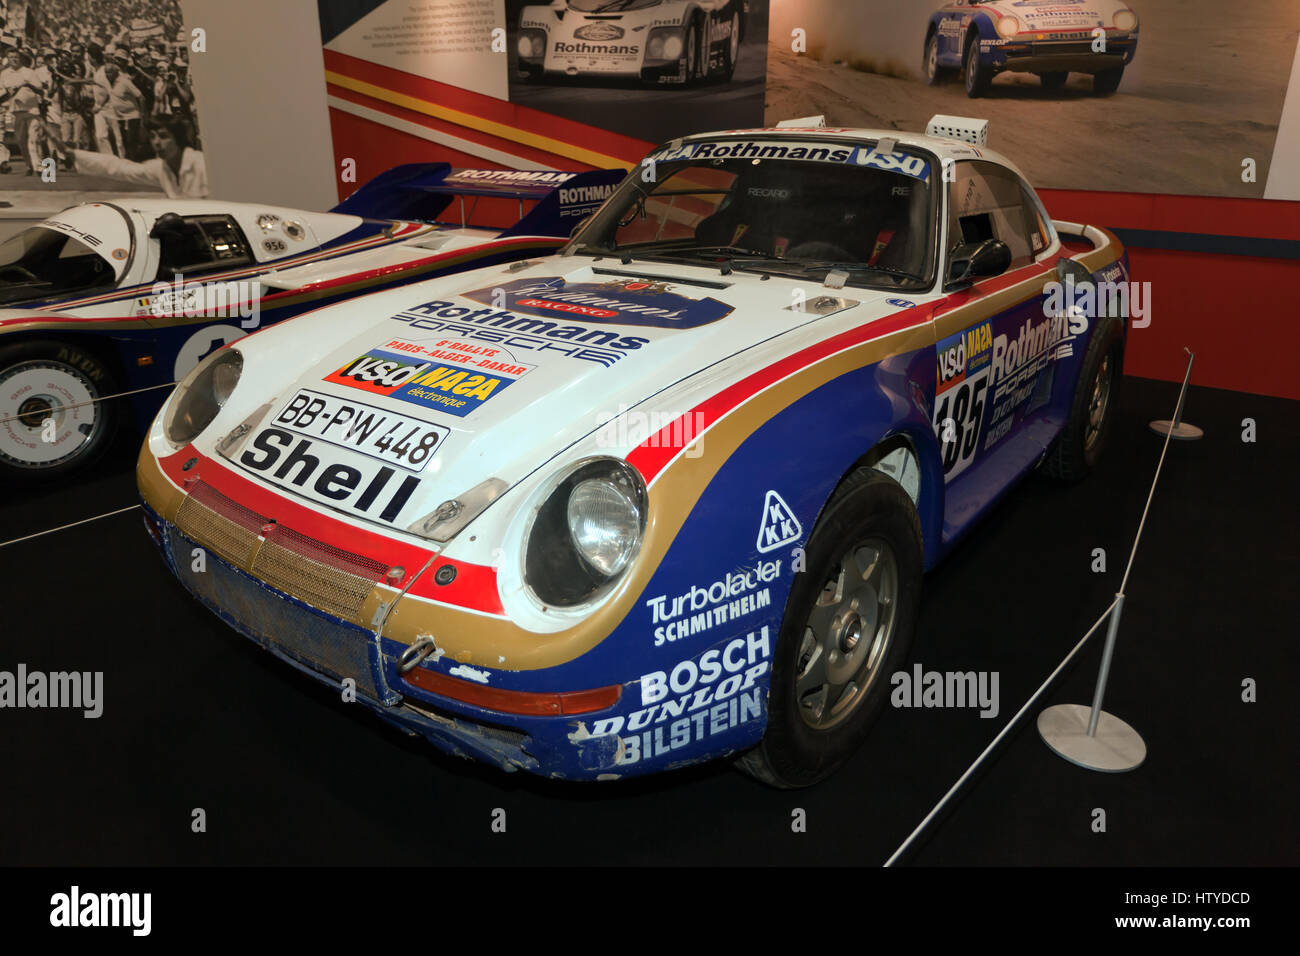 The Porsche 959, rally car, driven  to 2nd place, in the 1986 Paris-Dakar Rally, In the Jacky Ickx Icon Collection - Stock Image